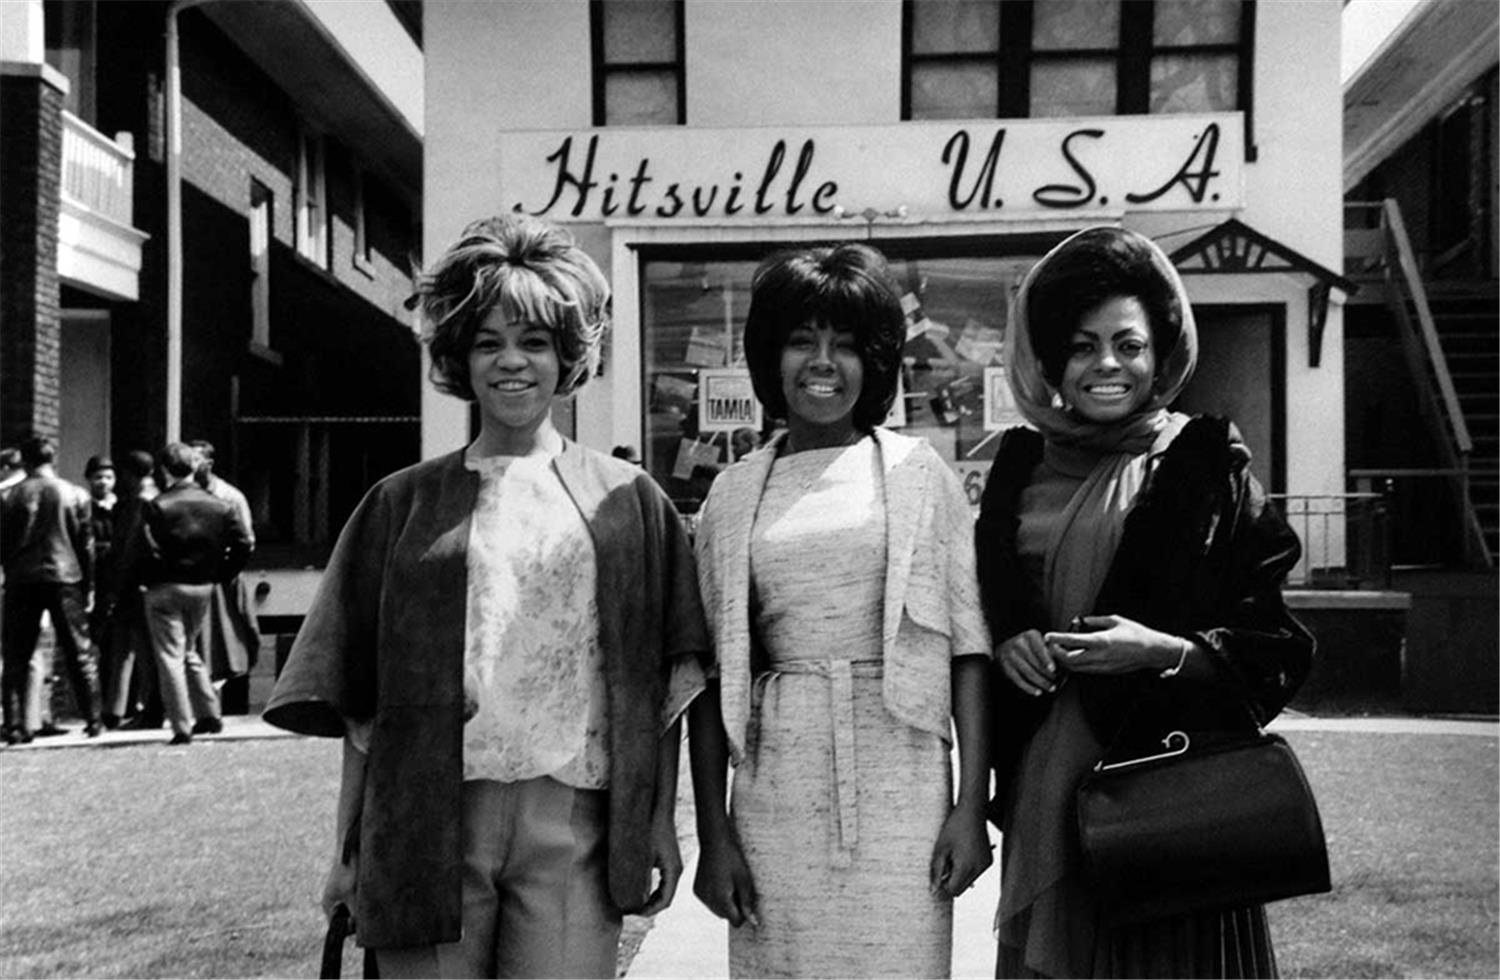 Diana Ross & The Supremes - Hitsville USA